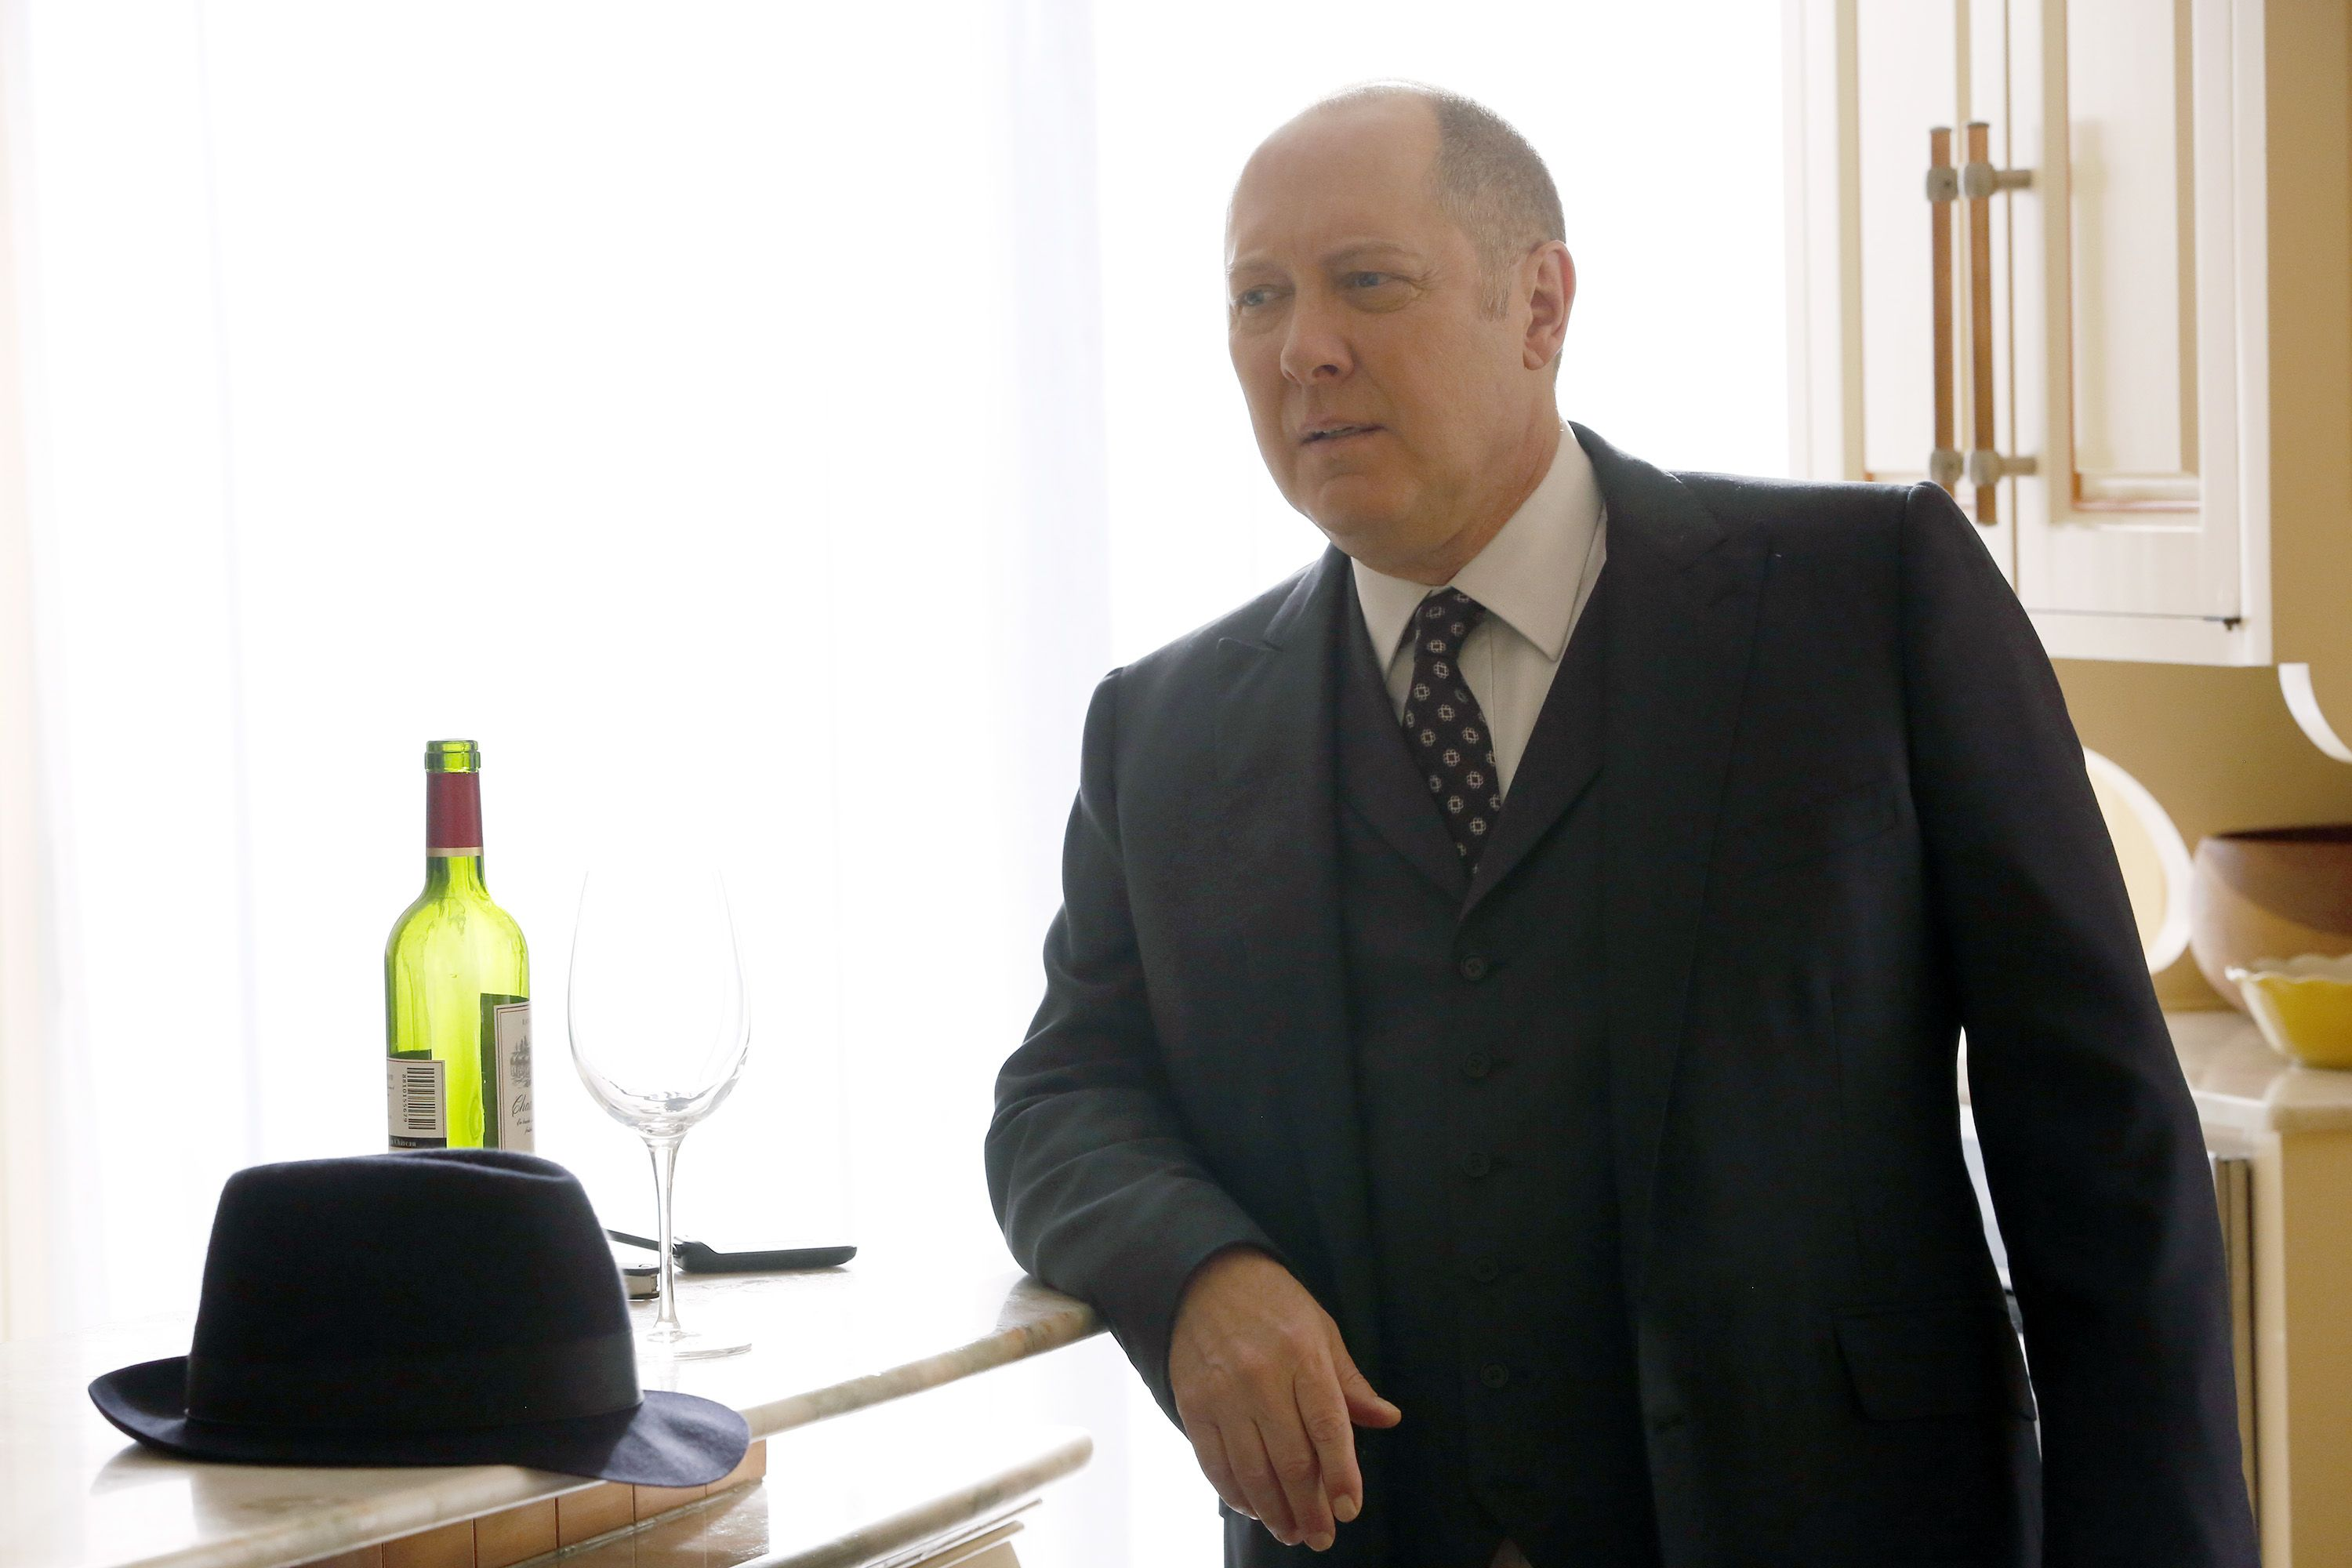 The Blacklist season 8 - Release date, cast and more